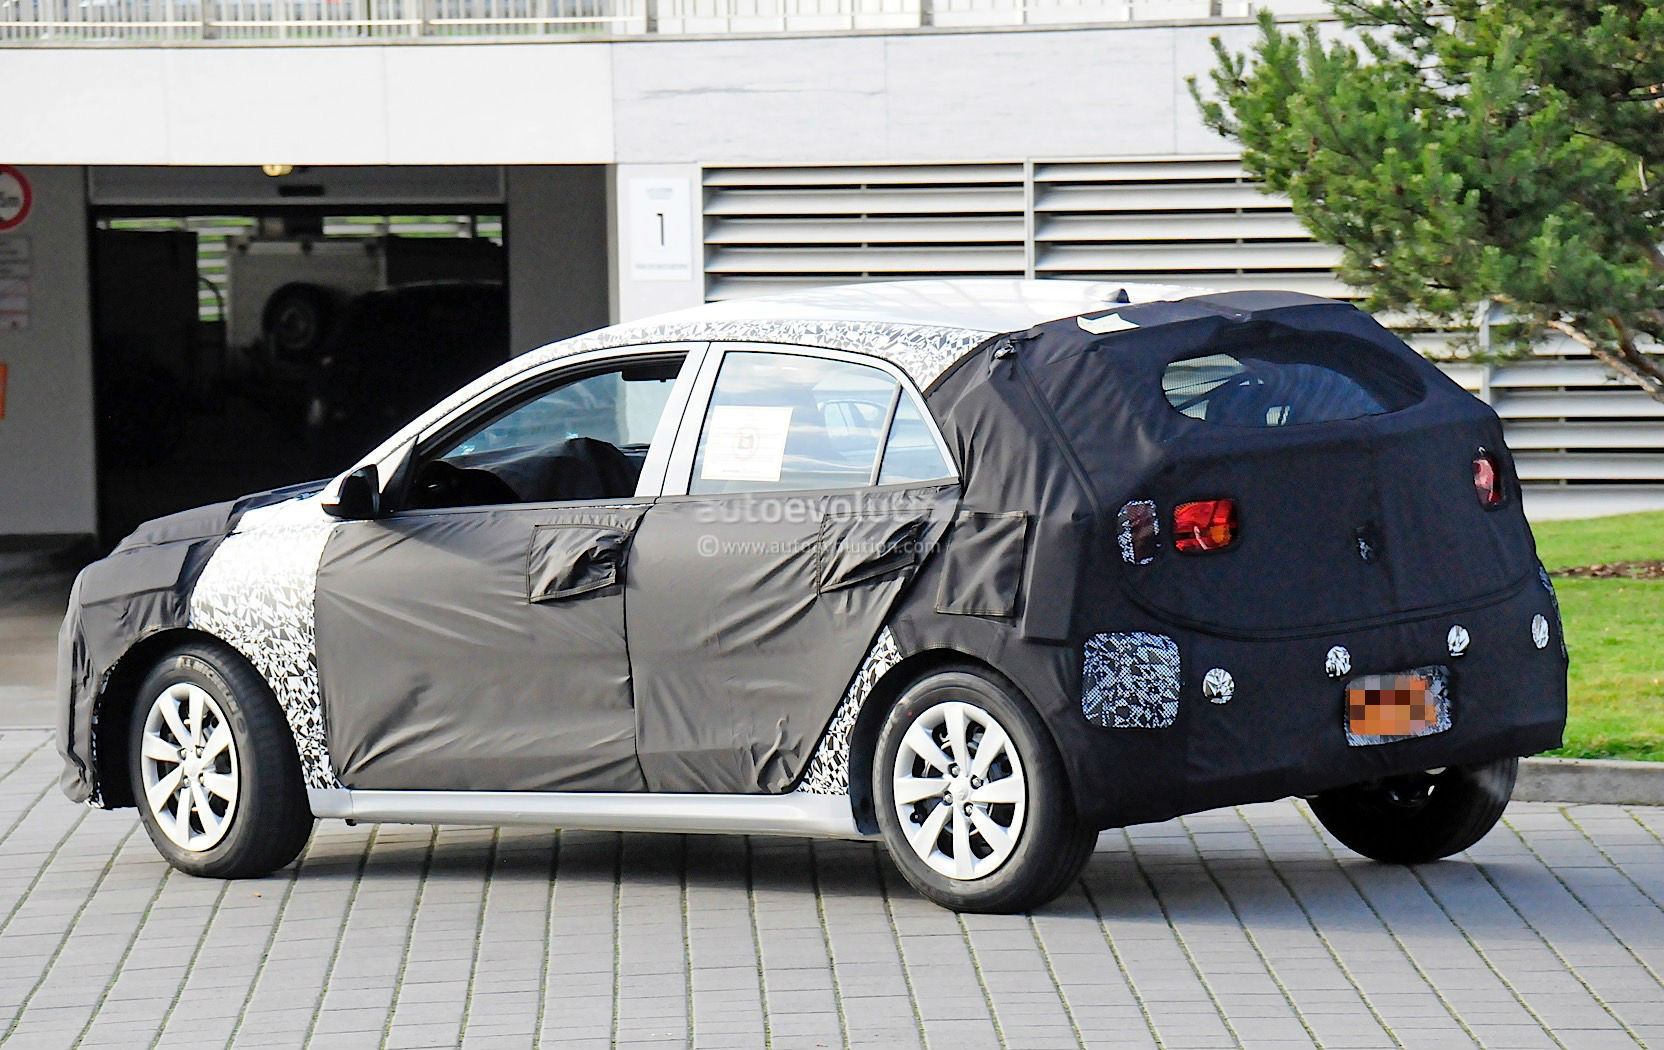 UPDATE: 2017 Kia Picanto Teased, Looks All Grown Up For a City Car